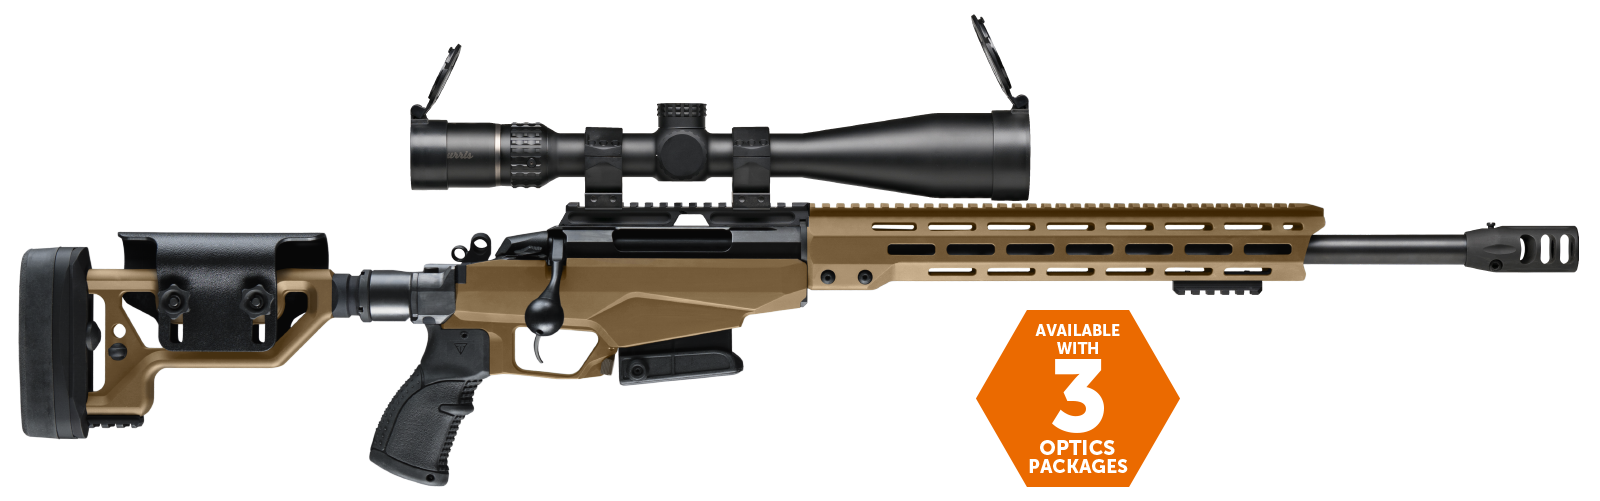 TIKKA TACT A1 & OPTICS PACKAGE